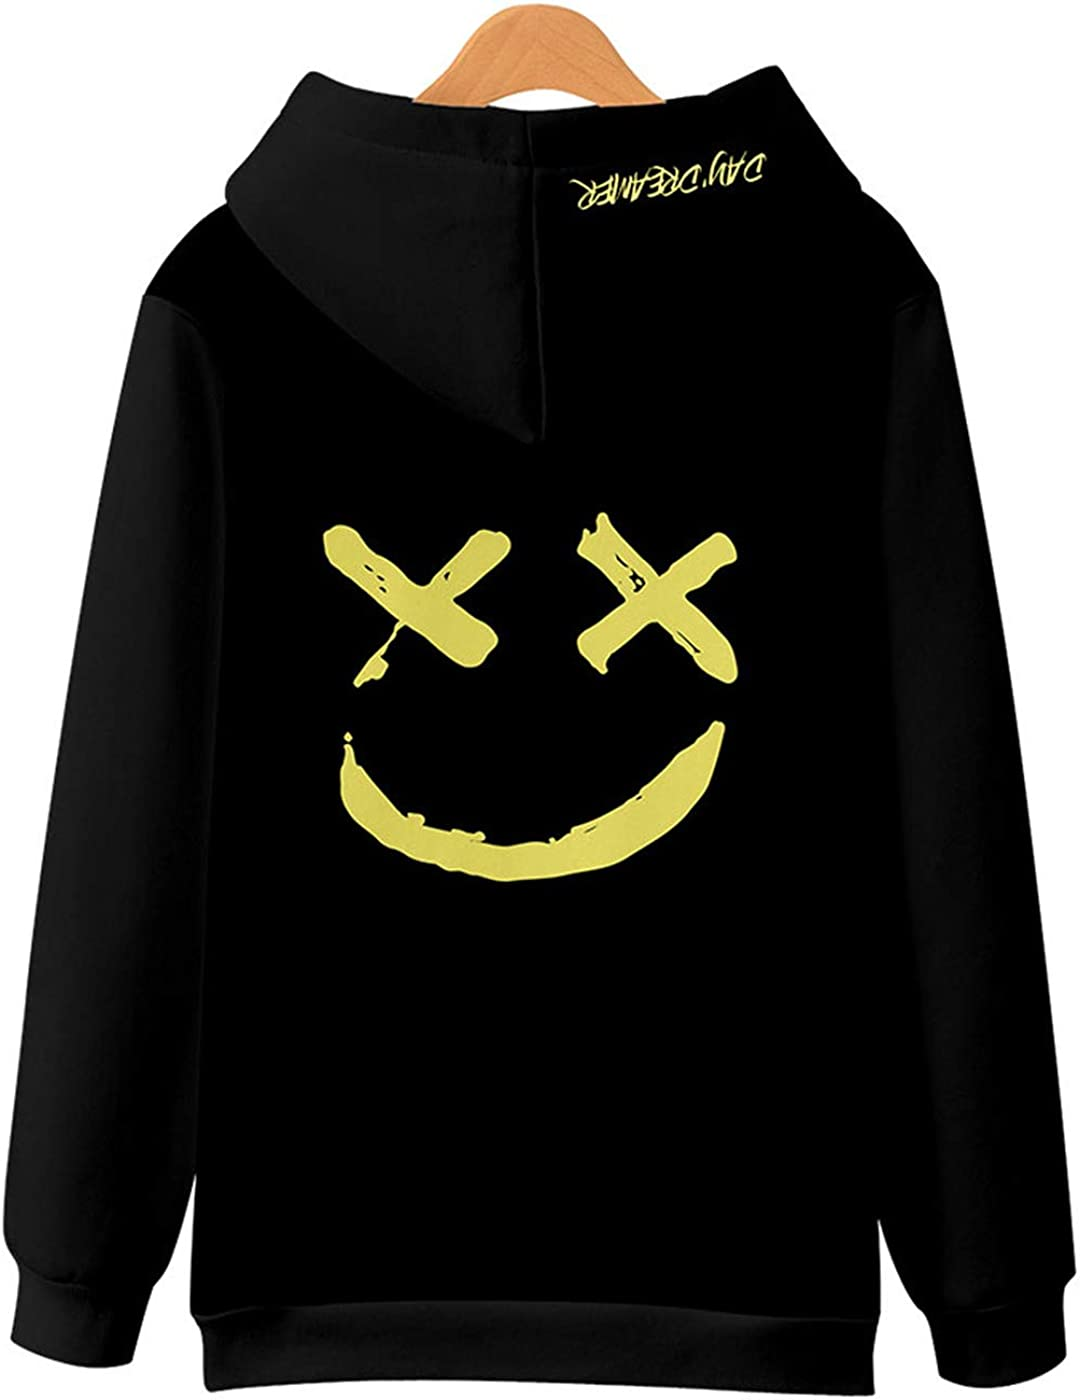 Clearance On Sale Litetao Men Pullover Hoodie Sweater Smile BE Happy Print Patchwork Hip Hop Christmas Costume